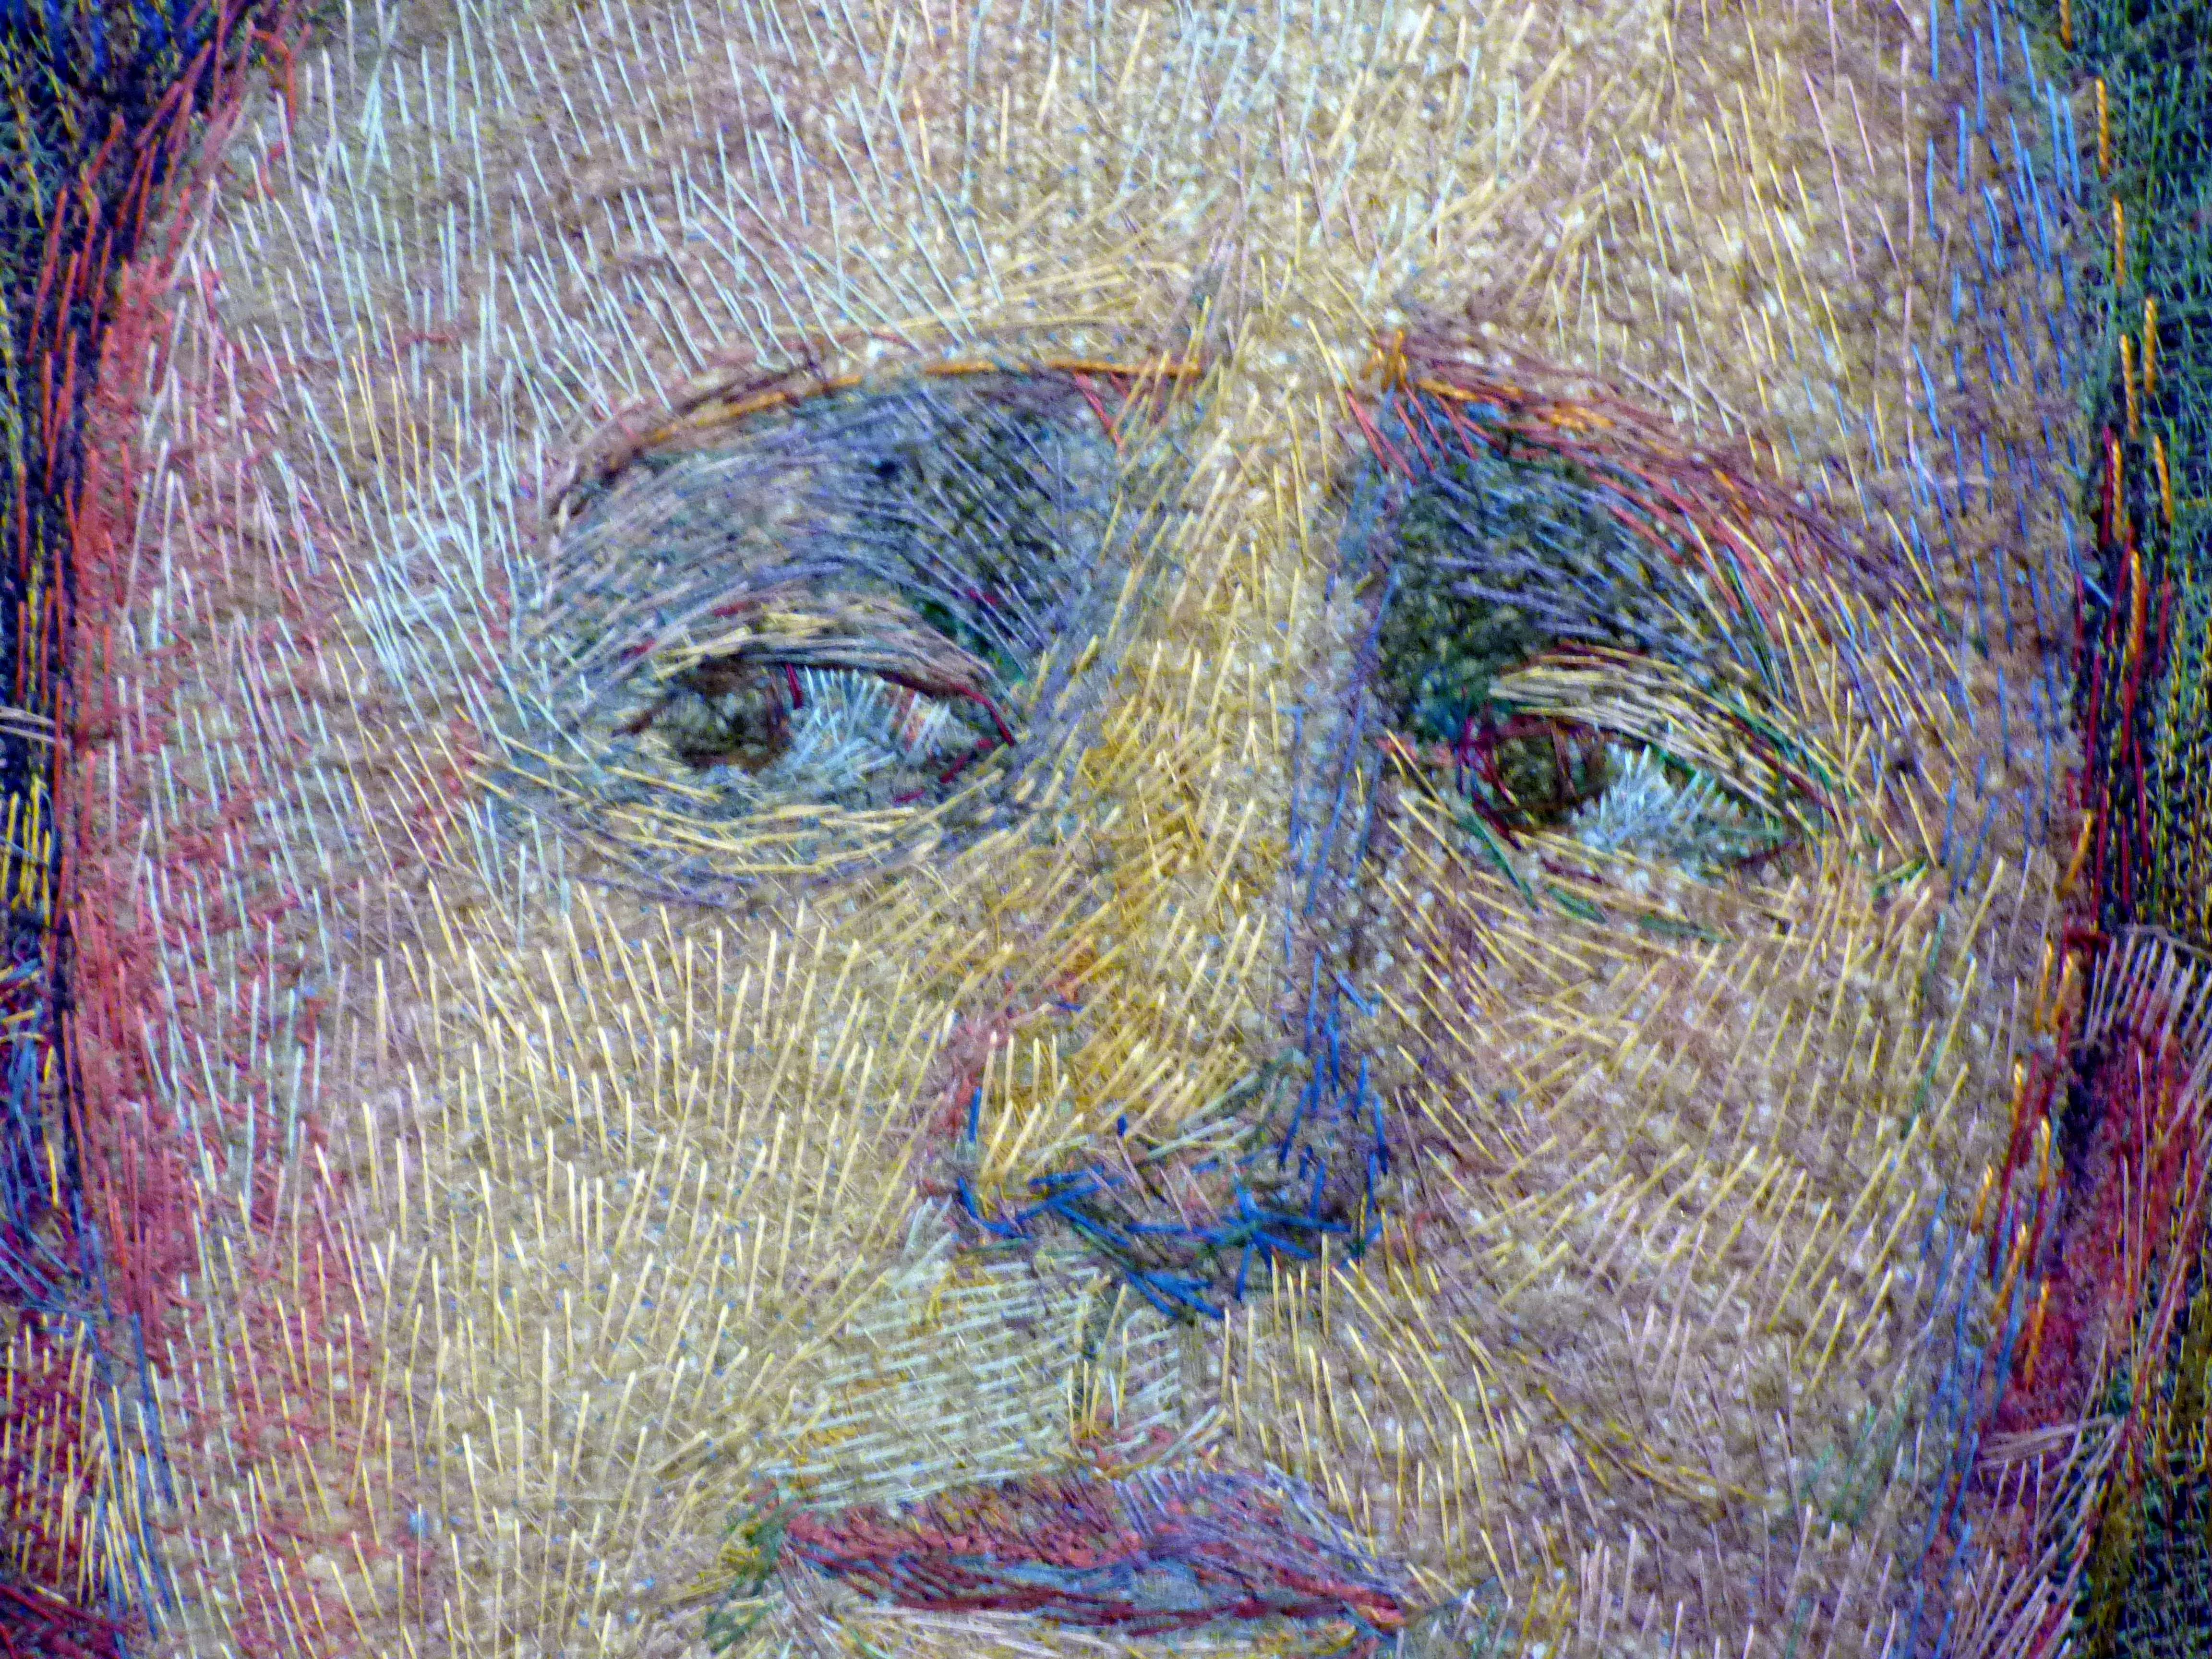 (detail) ADAM AND EVE, by Audrey Walker, stitched textile, 2000